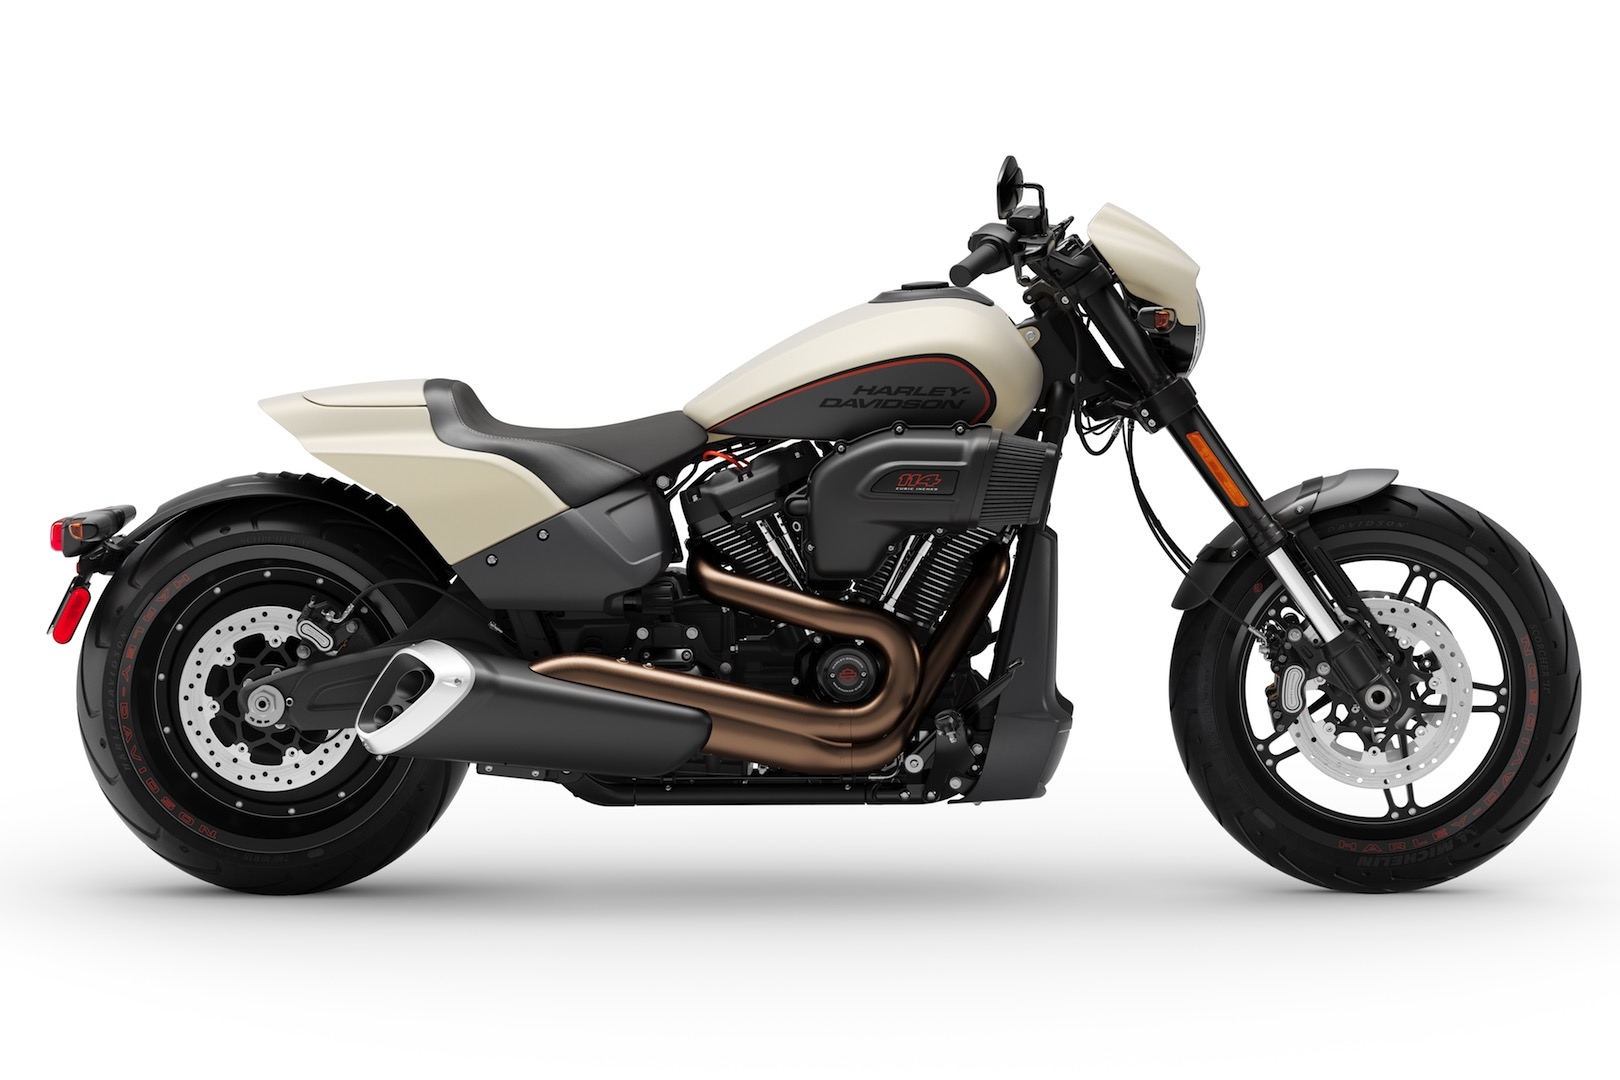 2019 Harley-Davidson FXDR 114 Review (14 Fast Facts)